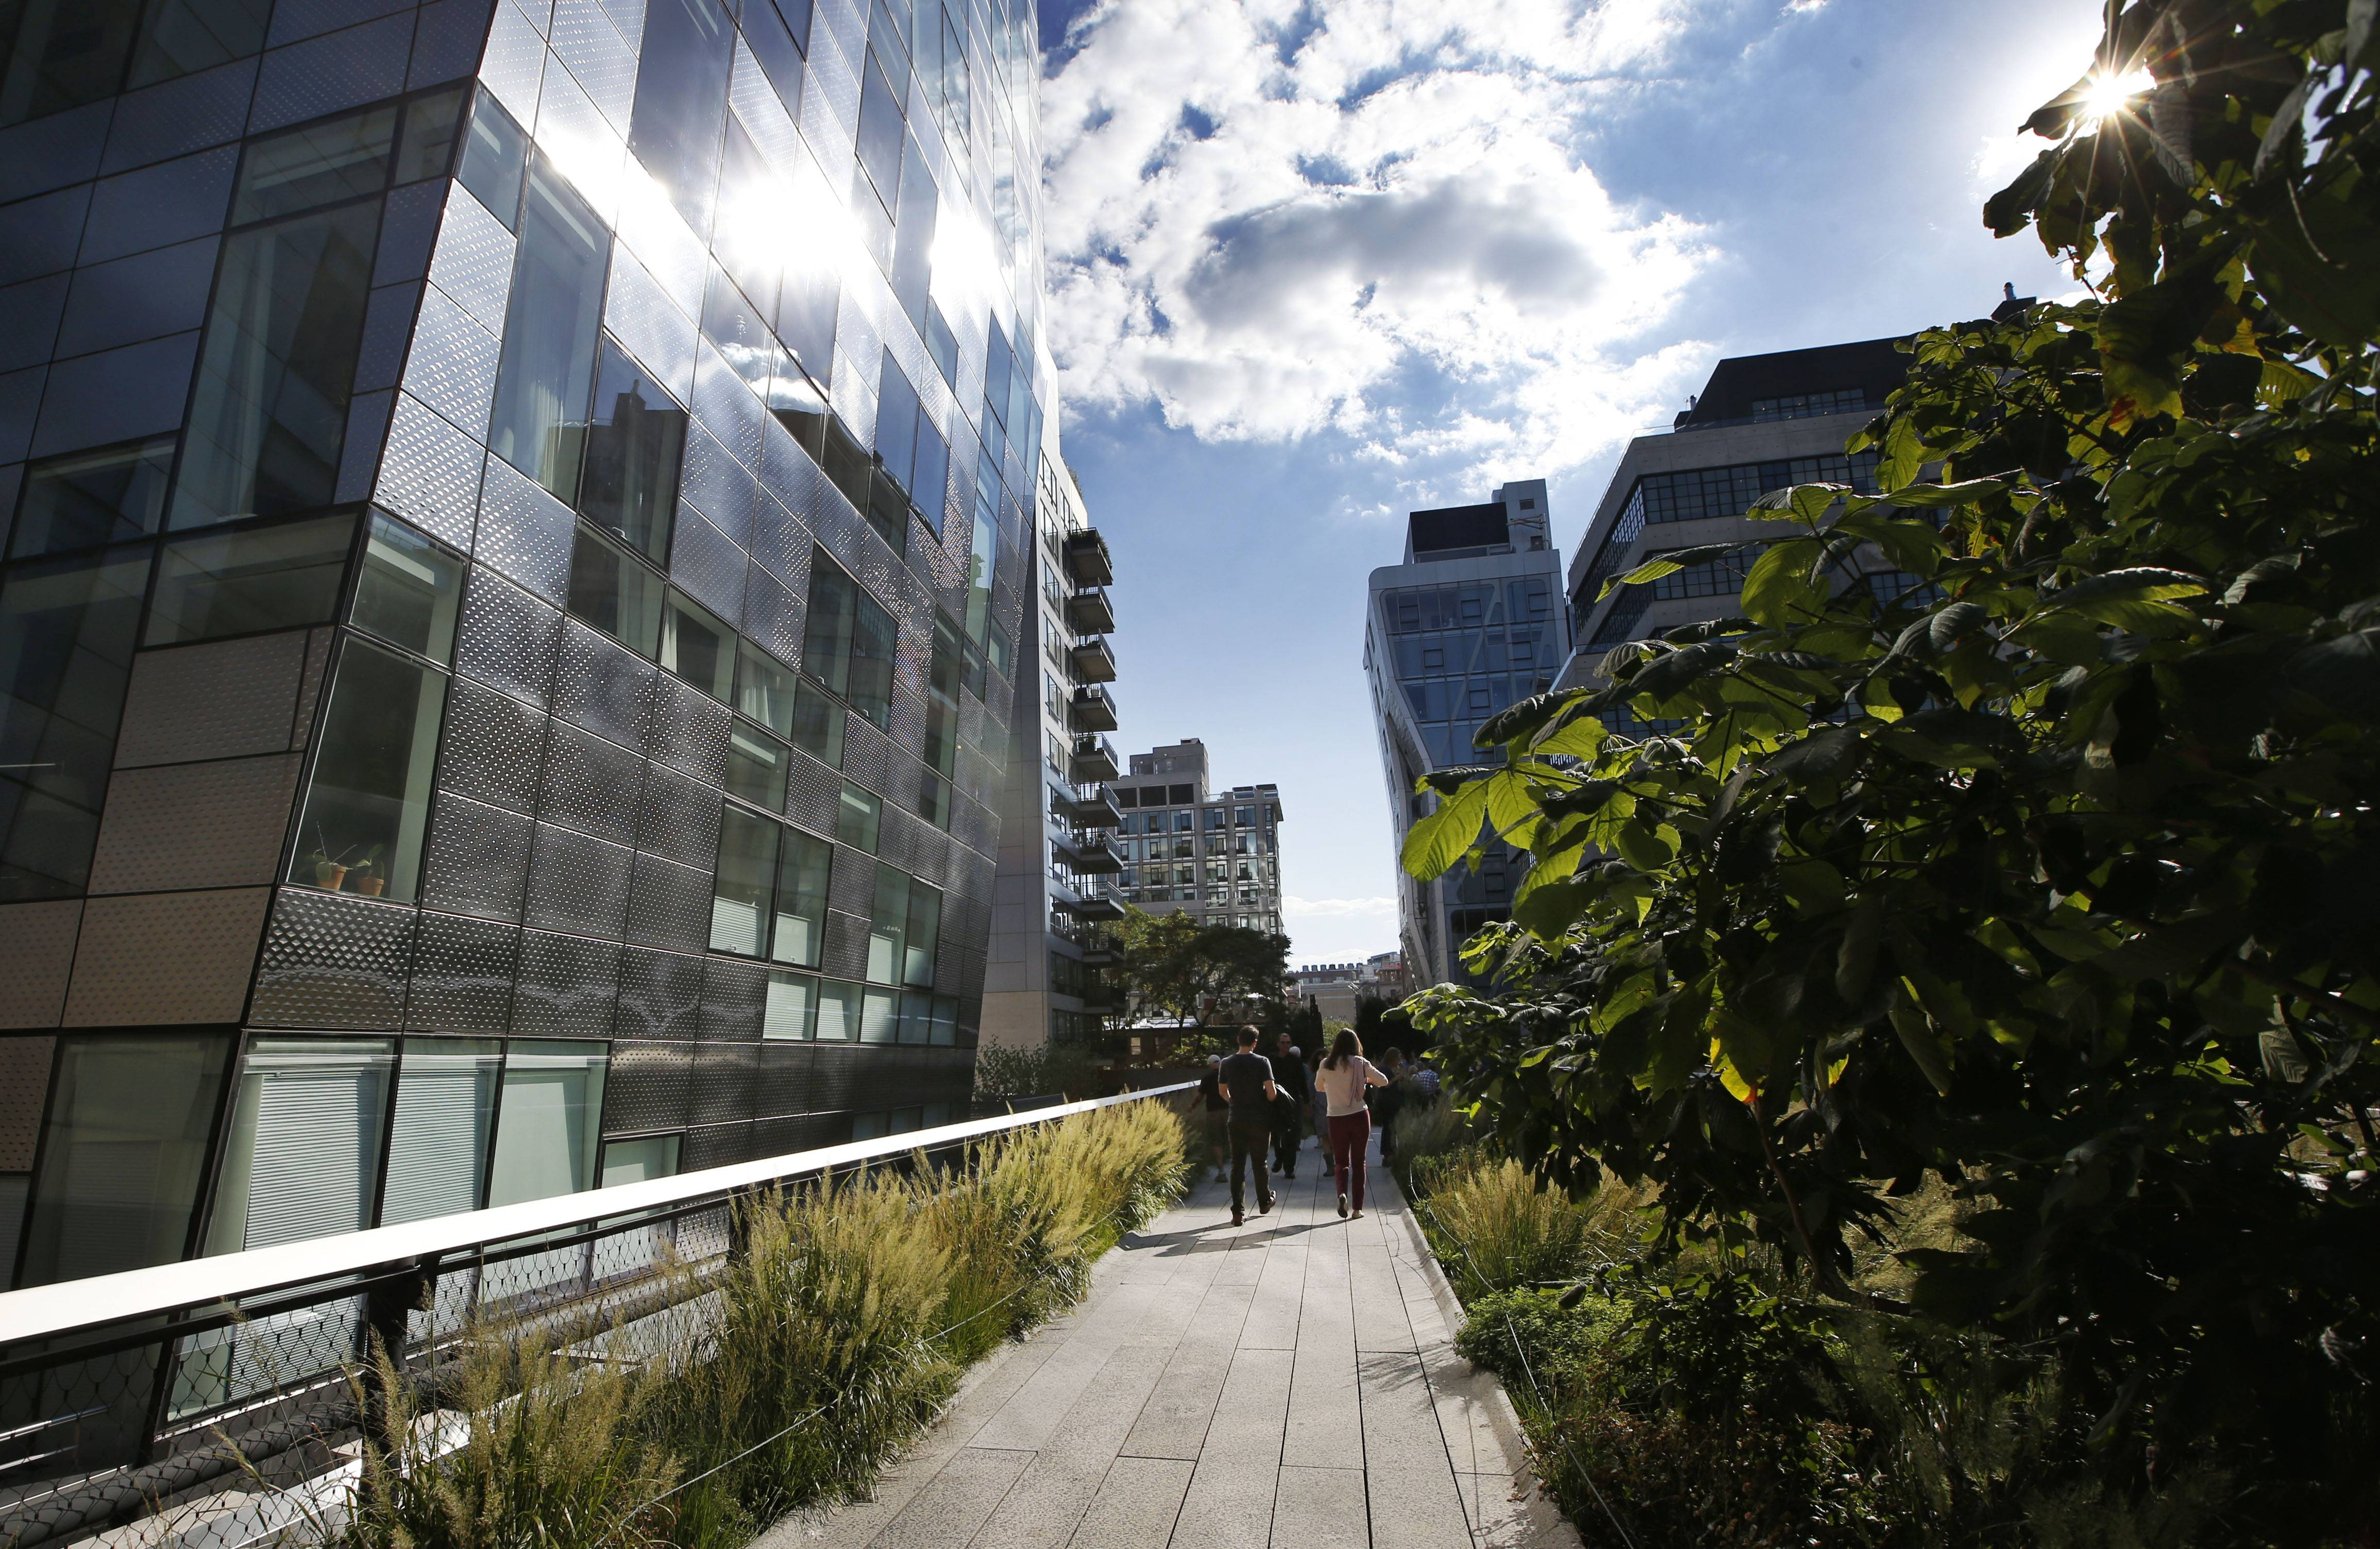 Pedestrians stroll between gleaming luxury apartment buildings Wednesday along the High Line in New York.